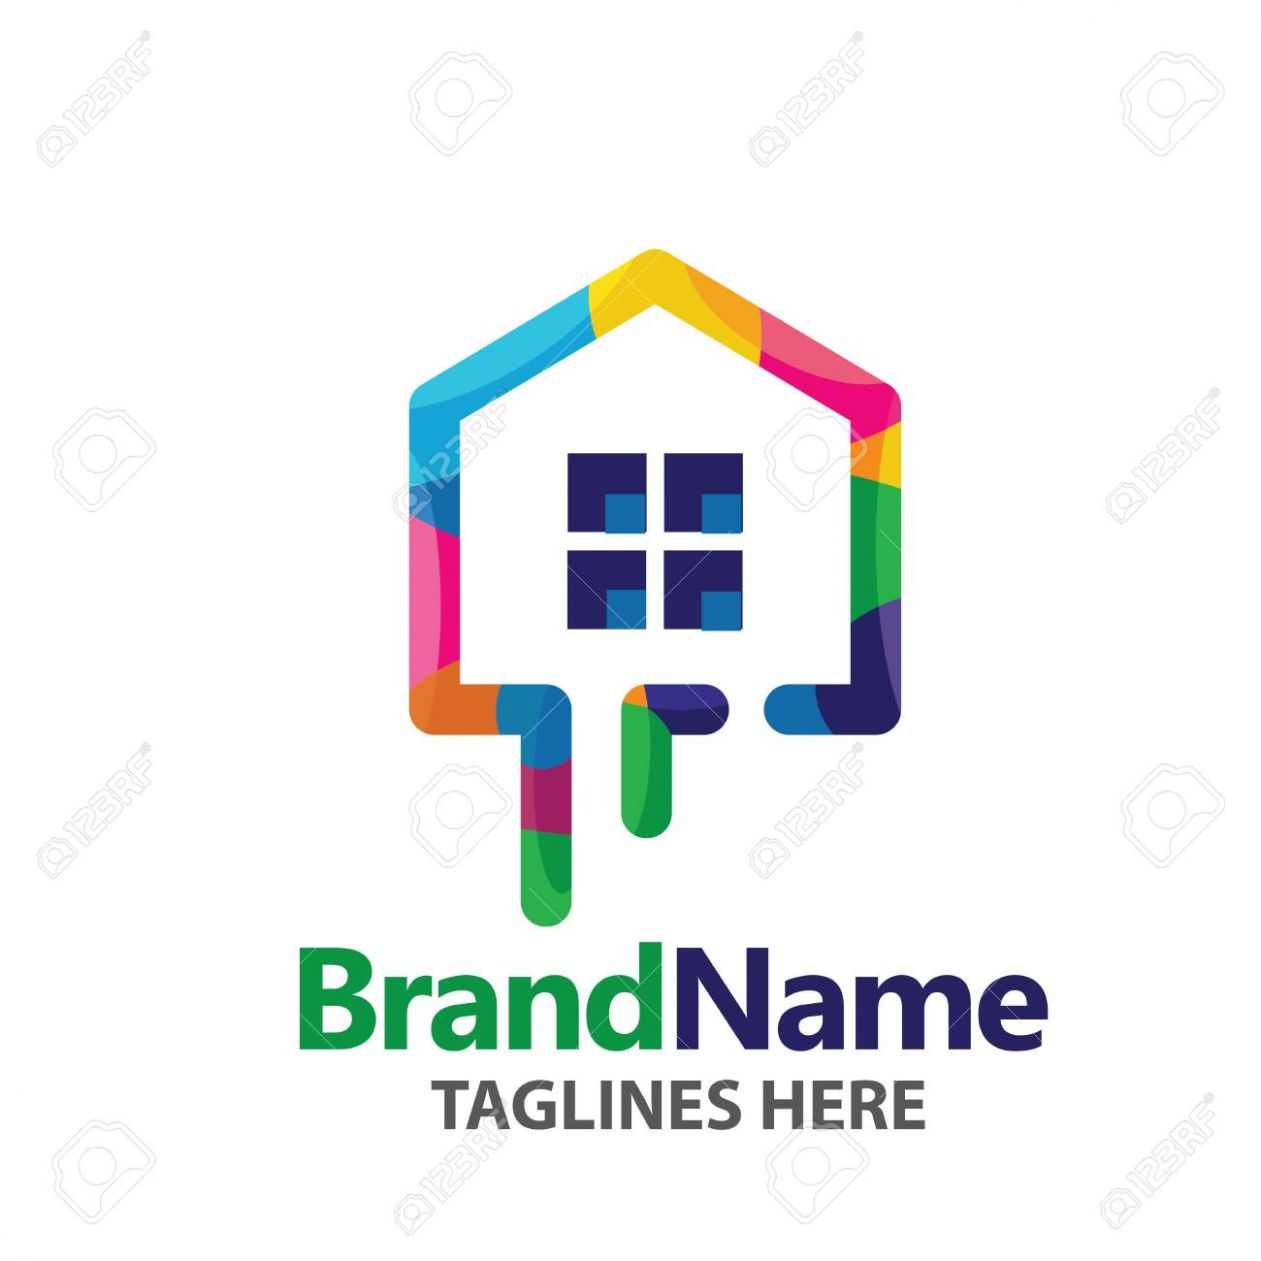 House painting service decor and repair logo,home decoration.